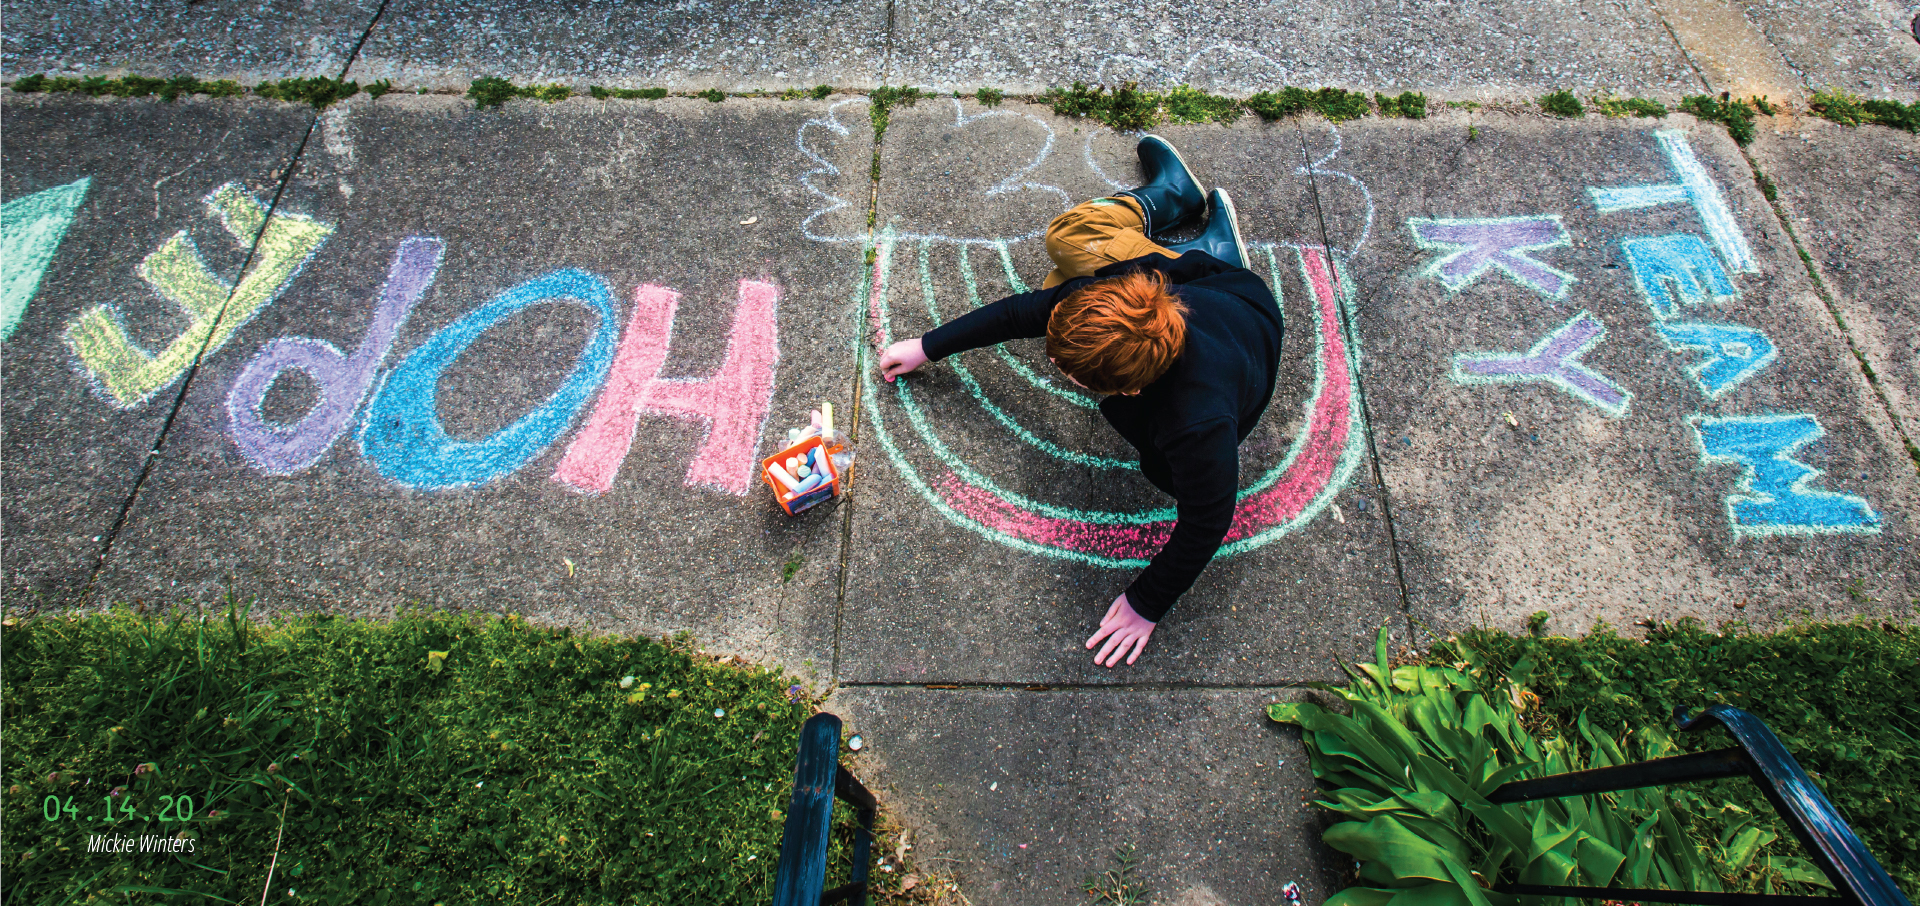 A kid drawing with sidewalk chalk. 04.14.2020, by Mickie Winters